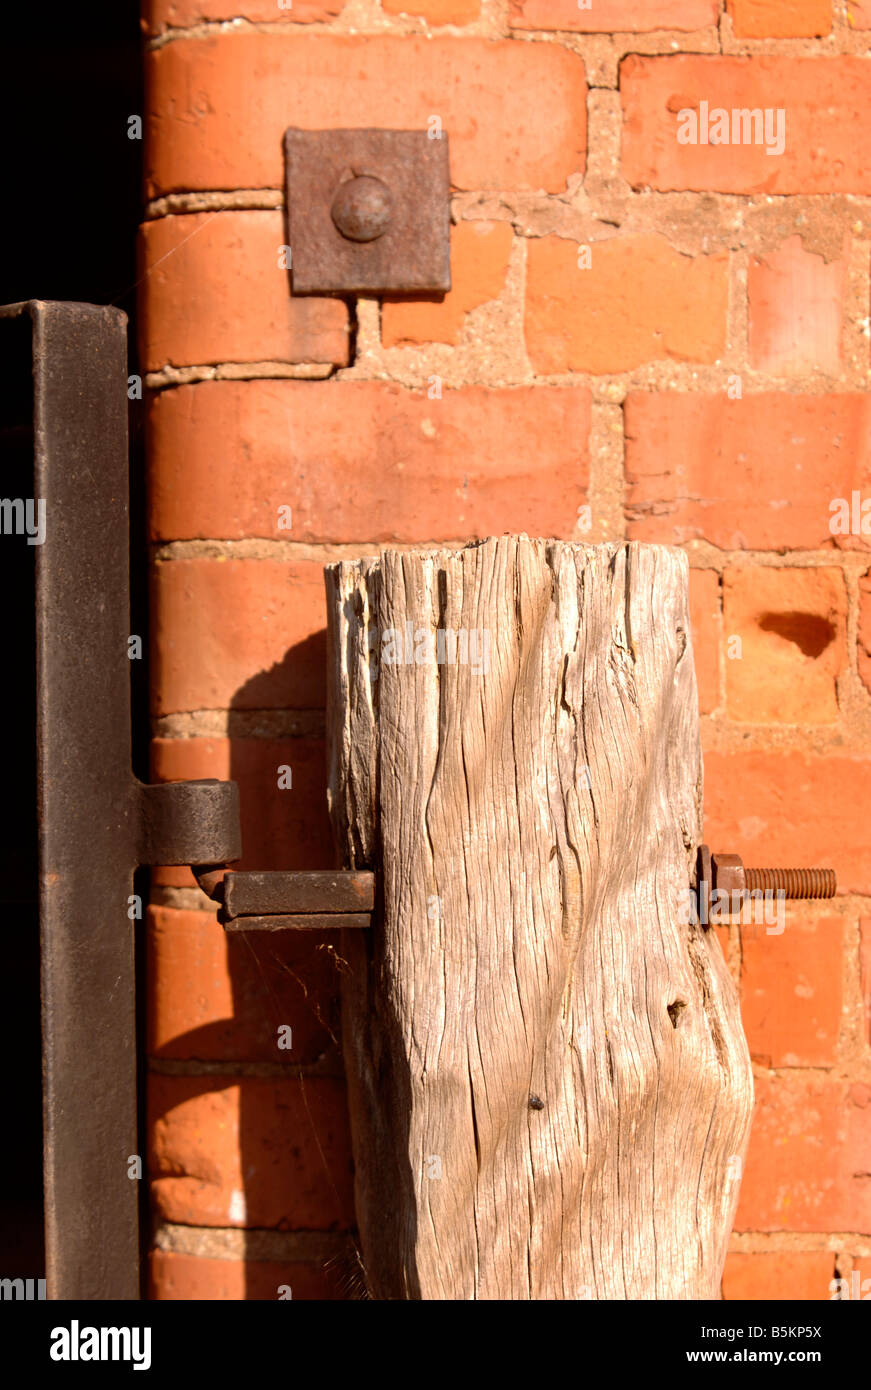 DETAIL OF A RED BRICK BARN WITH RUSTIC TIMBER GATEPOST IN HEREFORDSHIRE UK - Stock Image